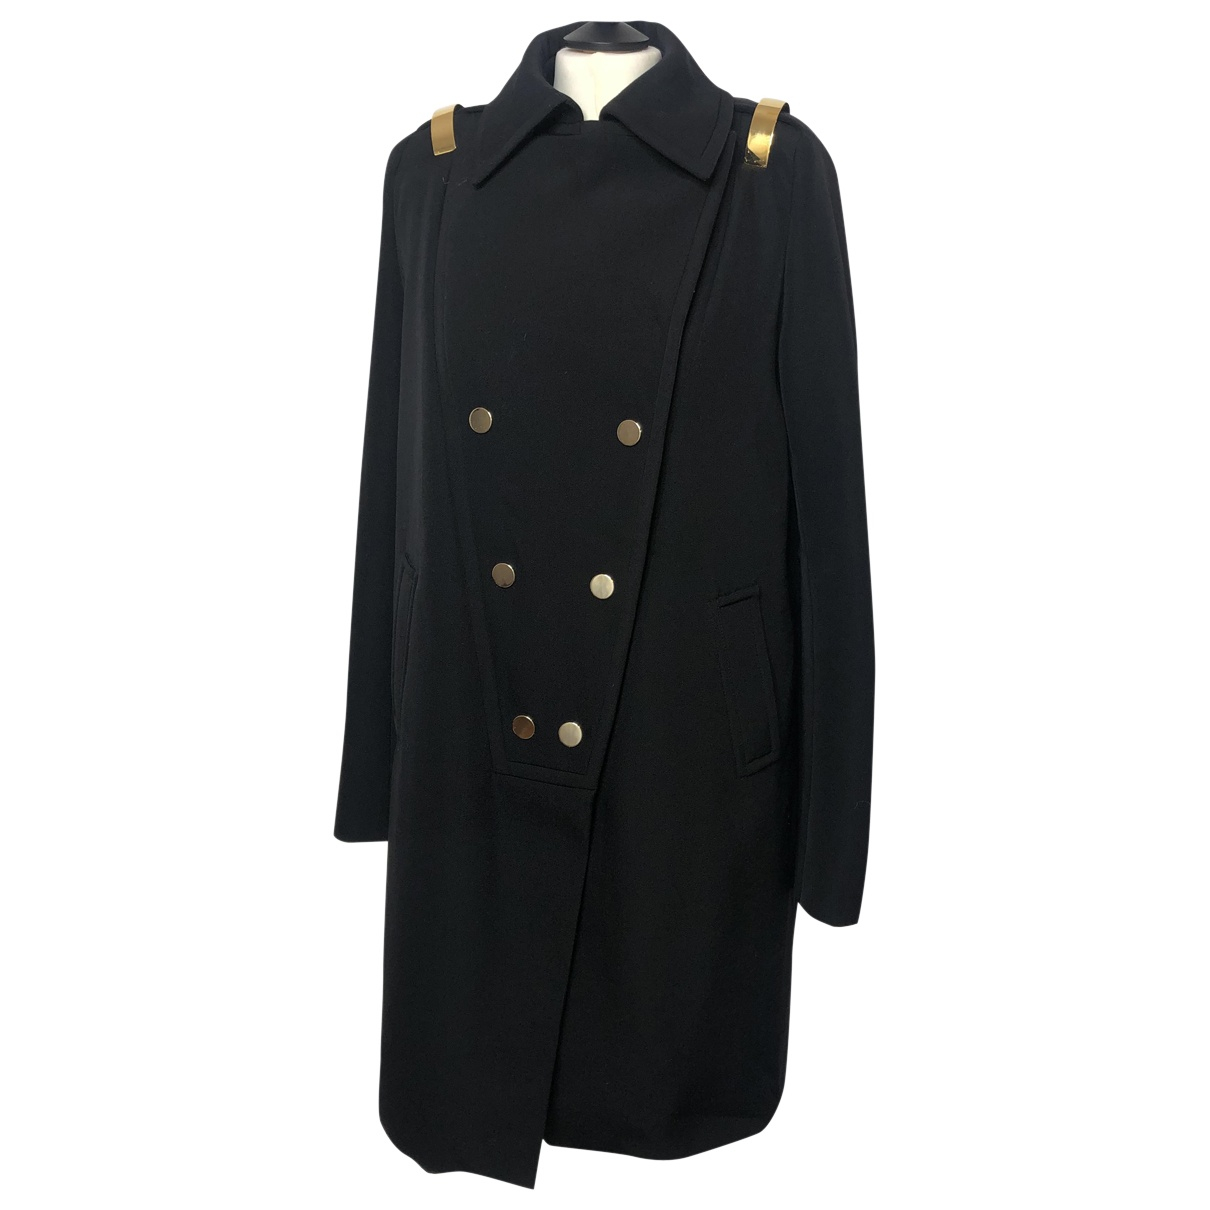 Givenchy N Black Wool coat for Women 38 FR